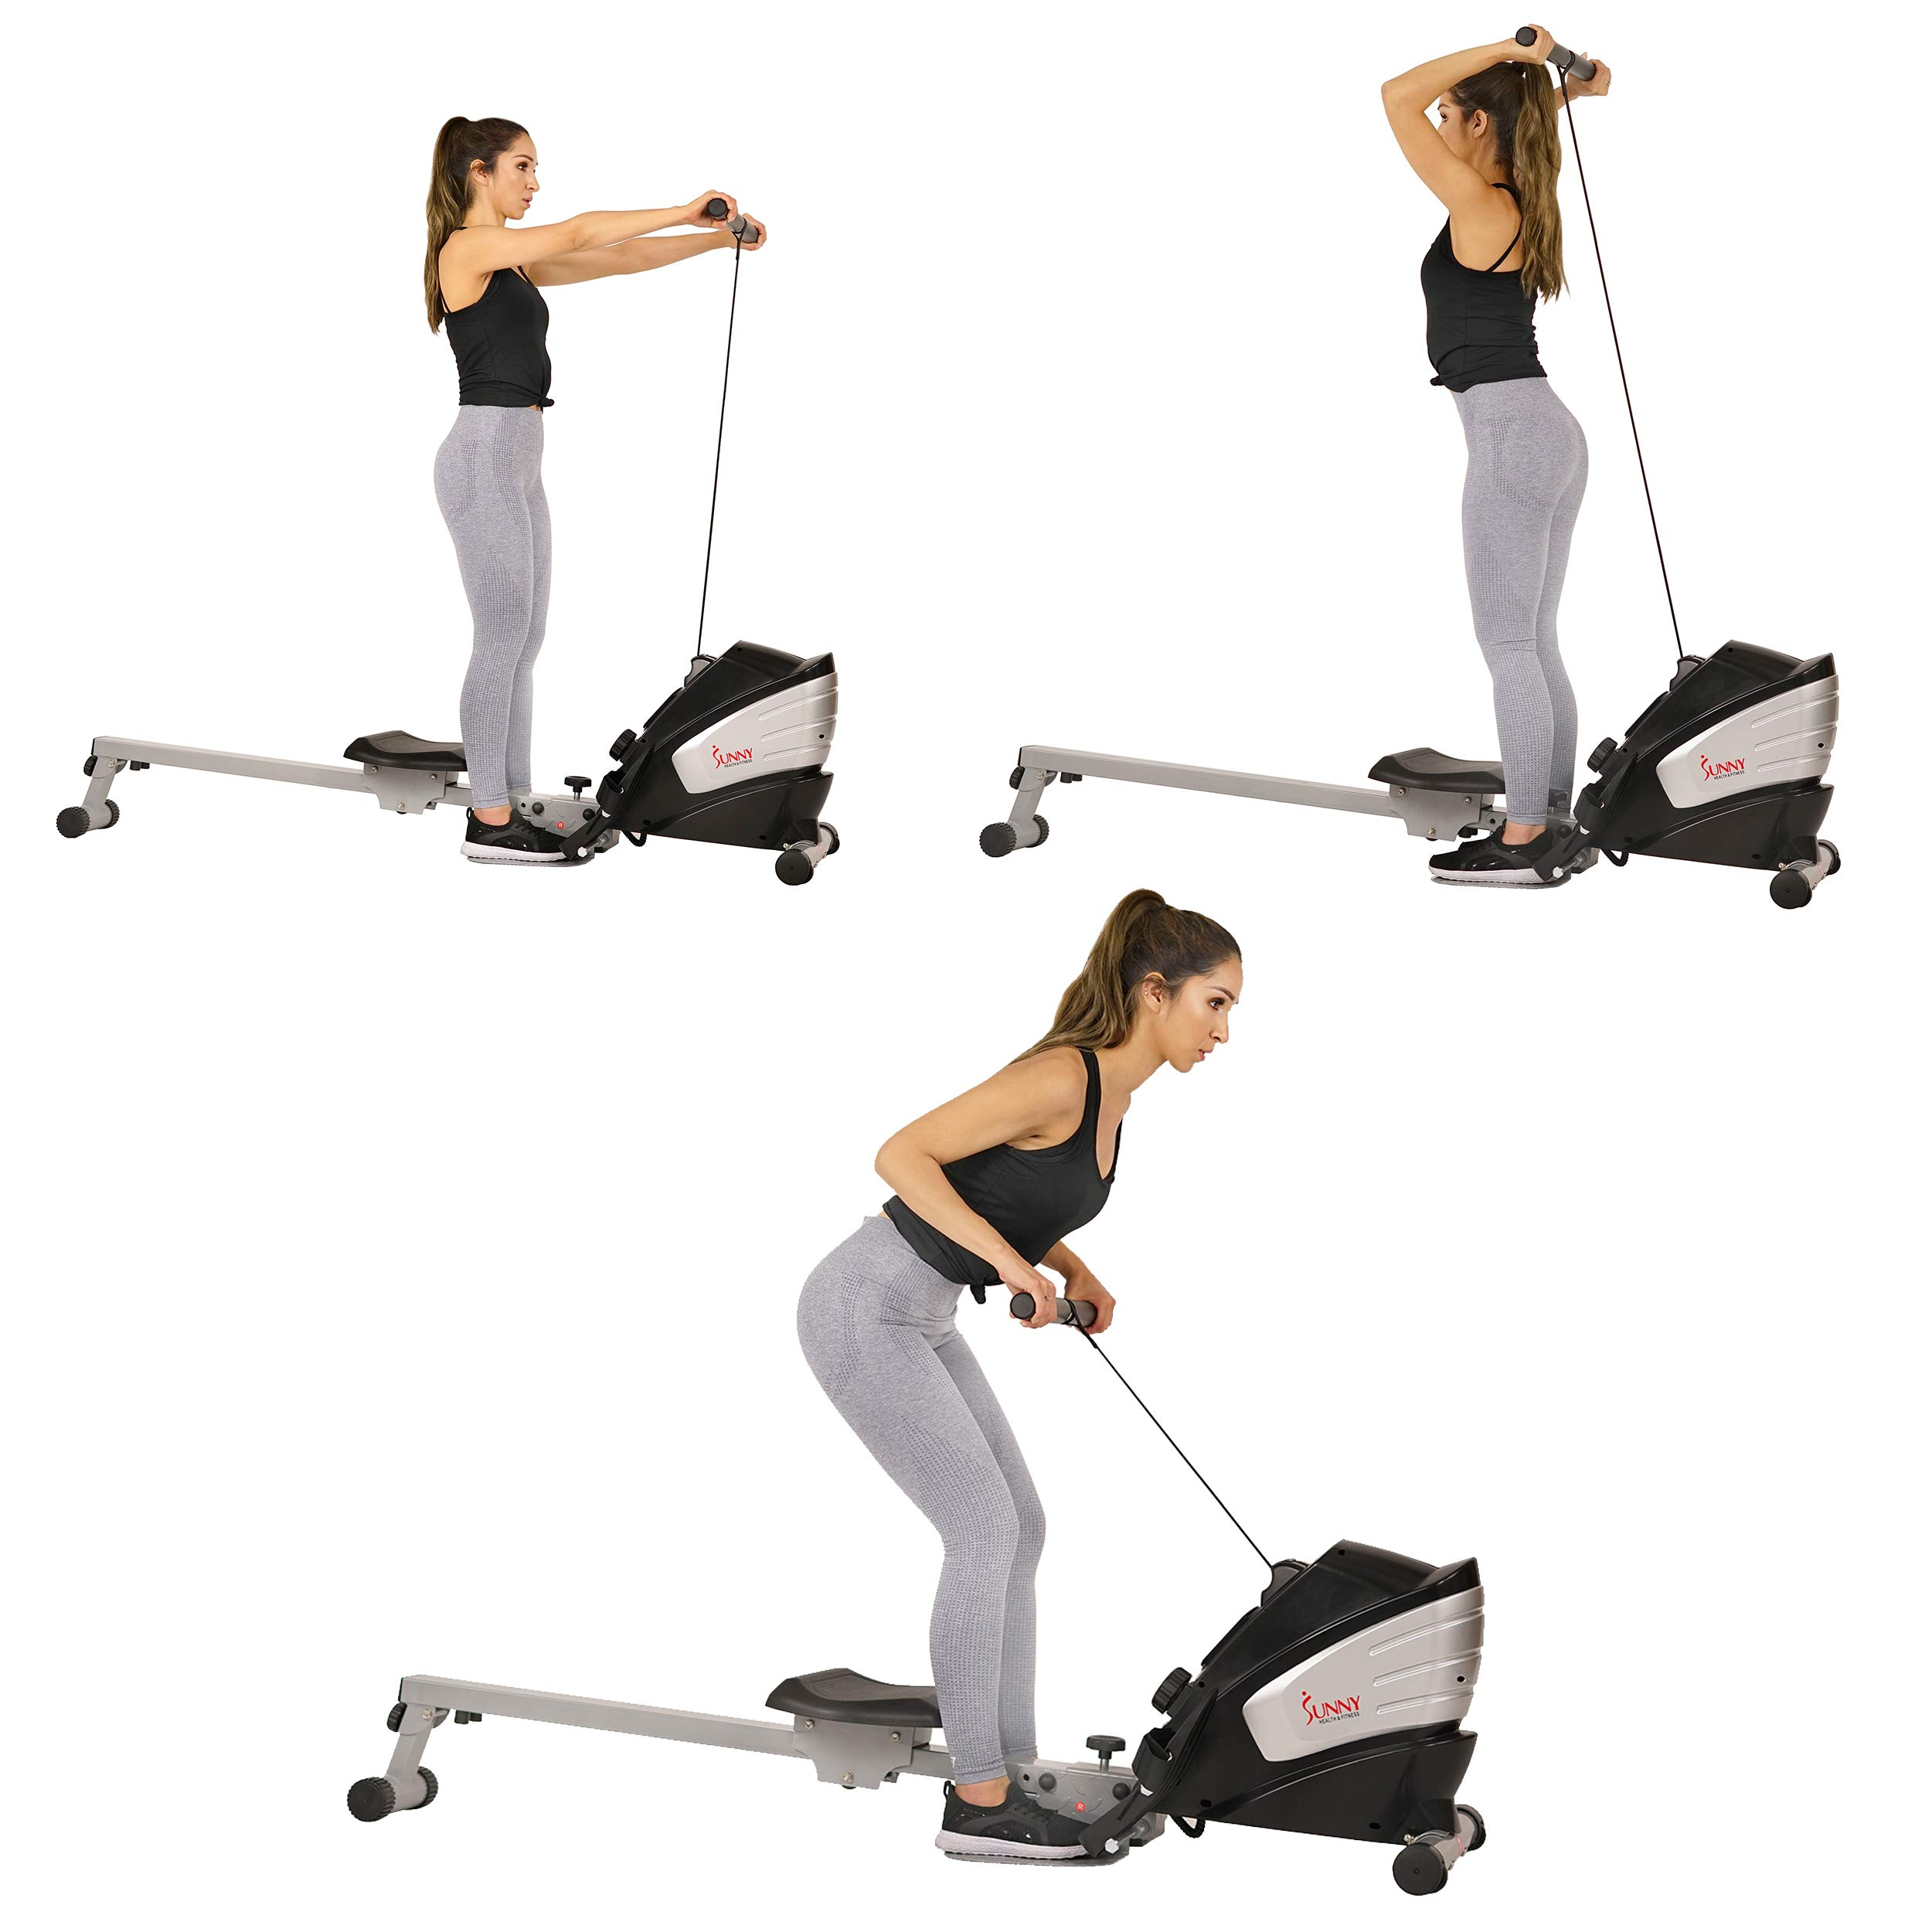 Sunny Health & Fitness Dual Function Magnetic Rowing Machine w/ Digital Monitor, Multi-Exercise Step Plates and Foldable -  SF-RW5622 by Sunny Health & Fitness (Image #8)